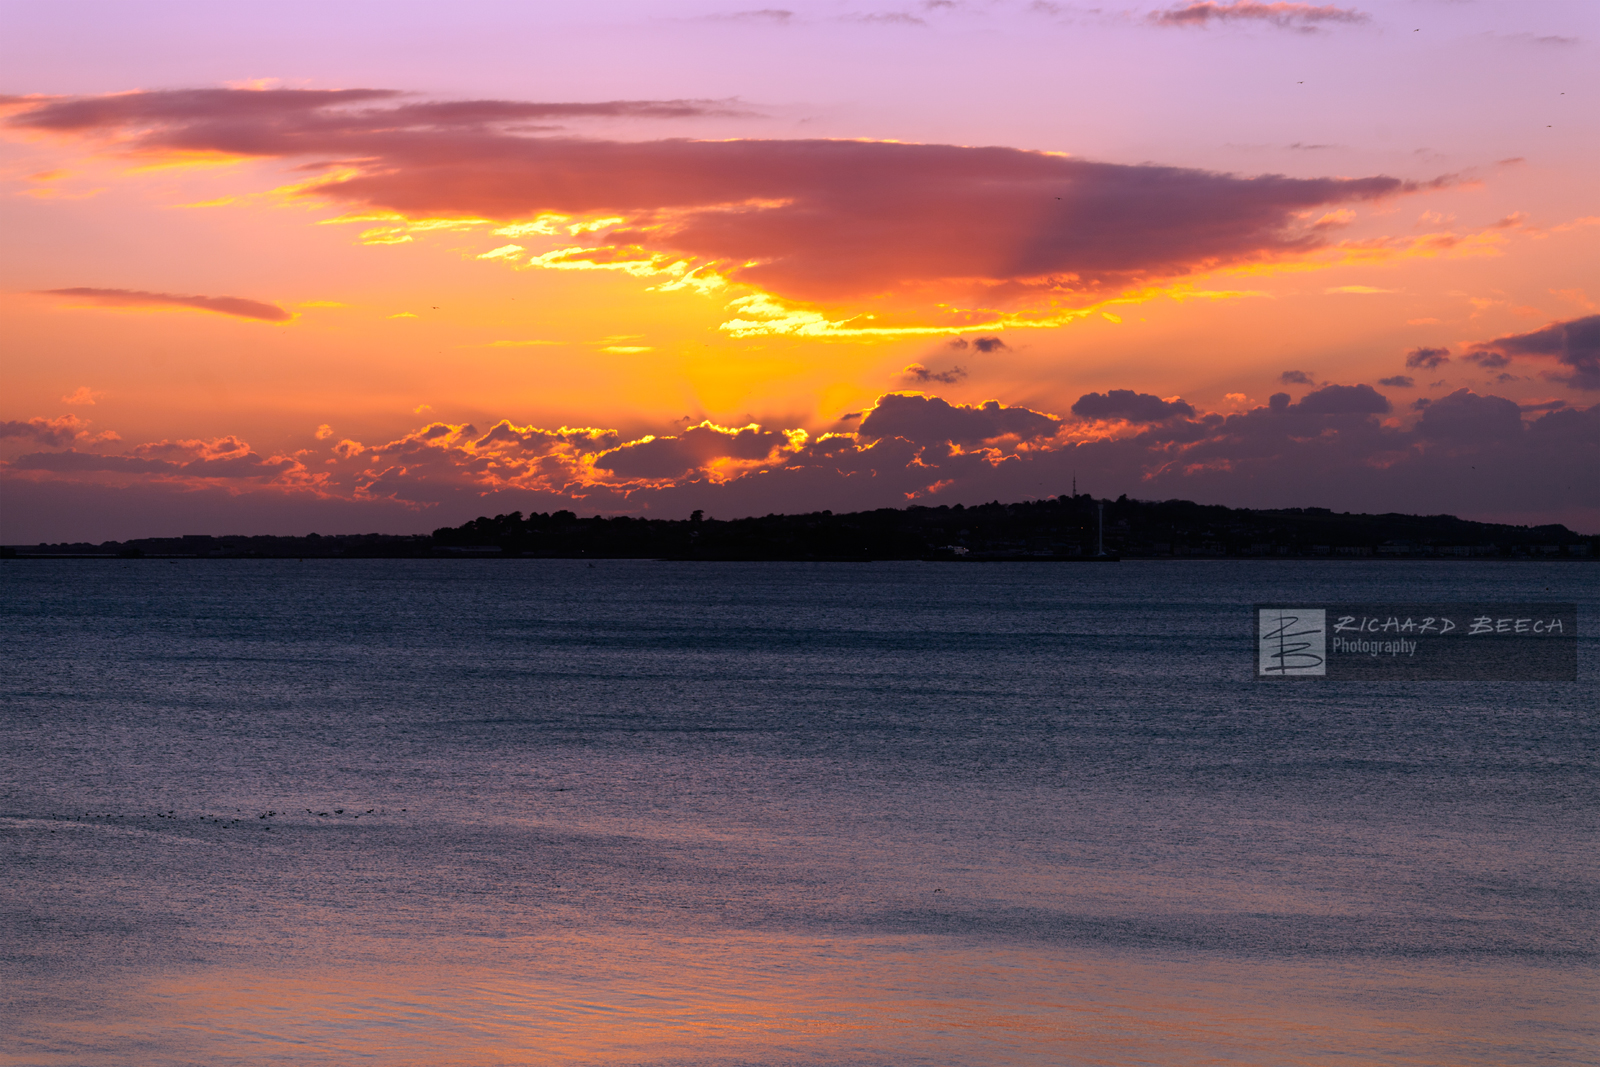 Sunset over Weymouth Bay